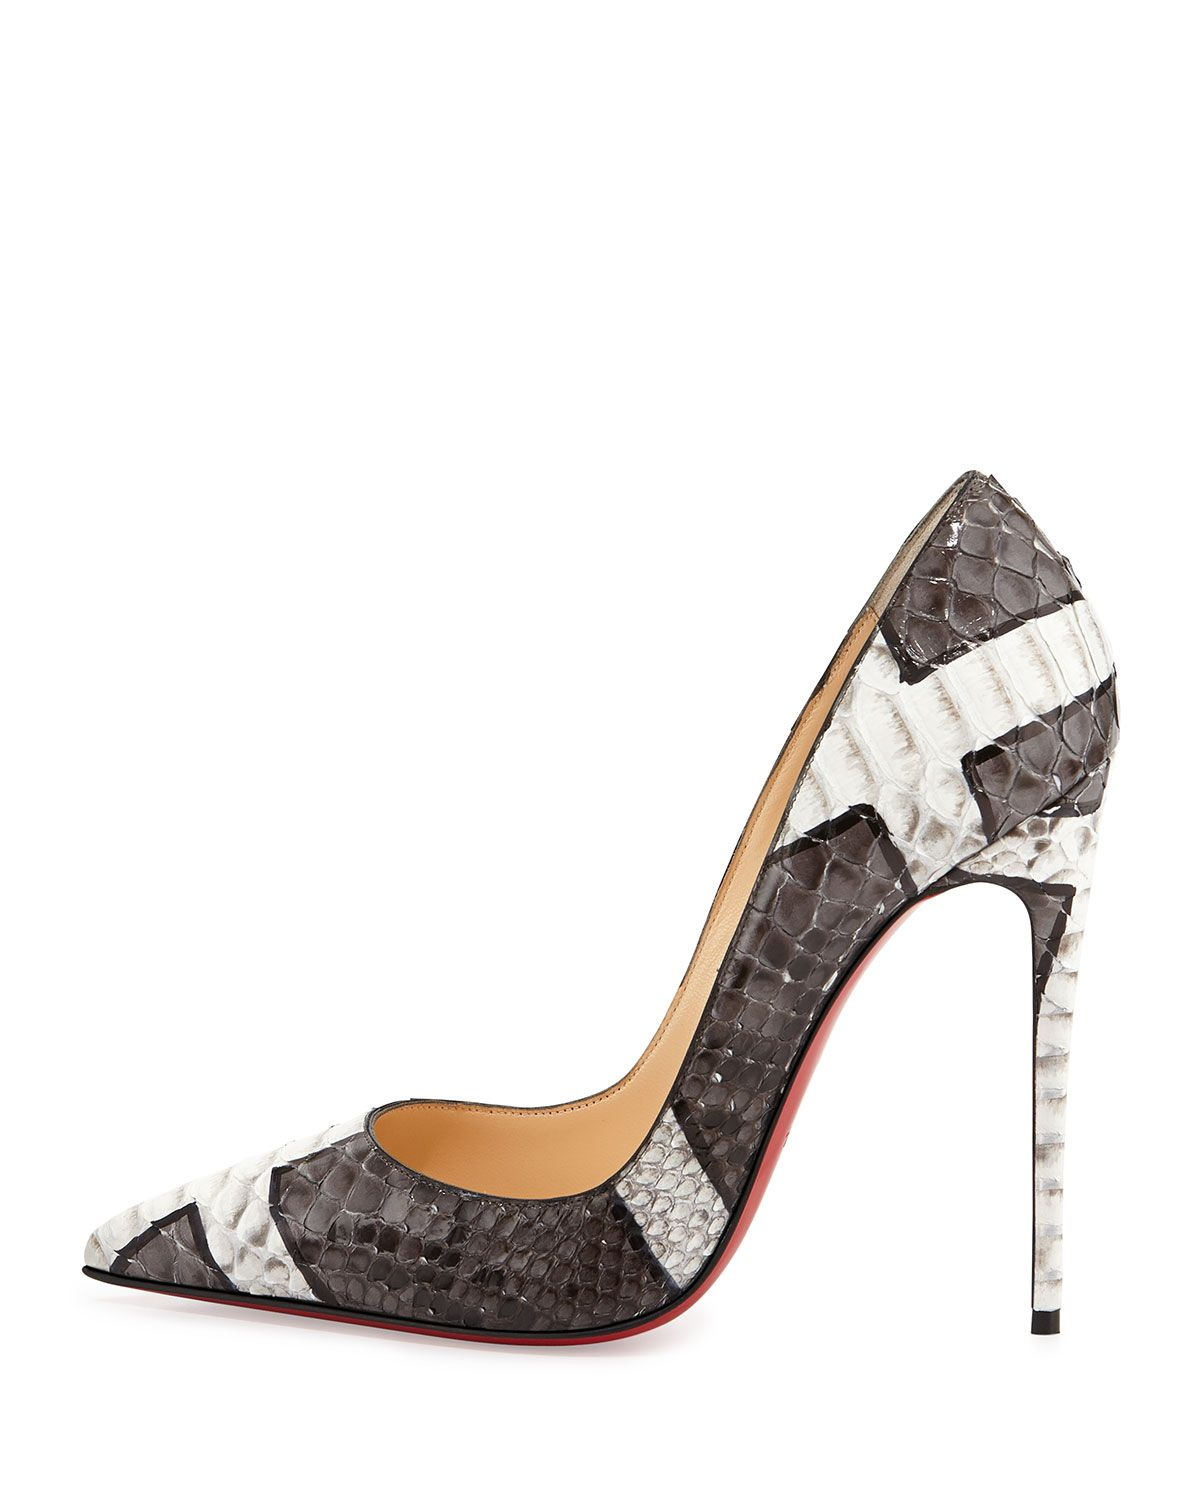 505783f80e1 So Kate Python Red Sole Pump Gray/White | Shoes | Shoes, Louboutin ...